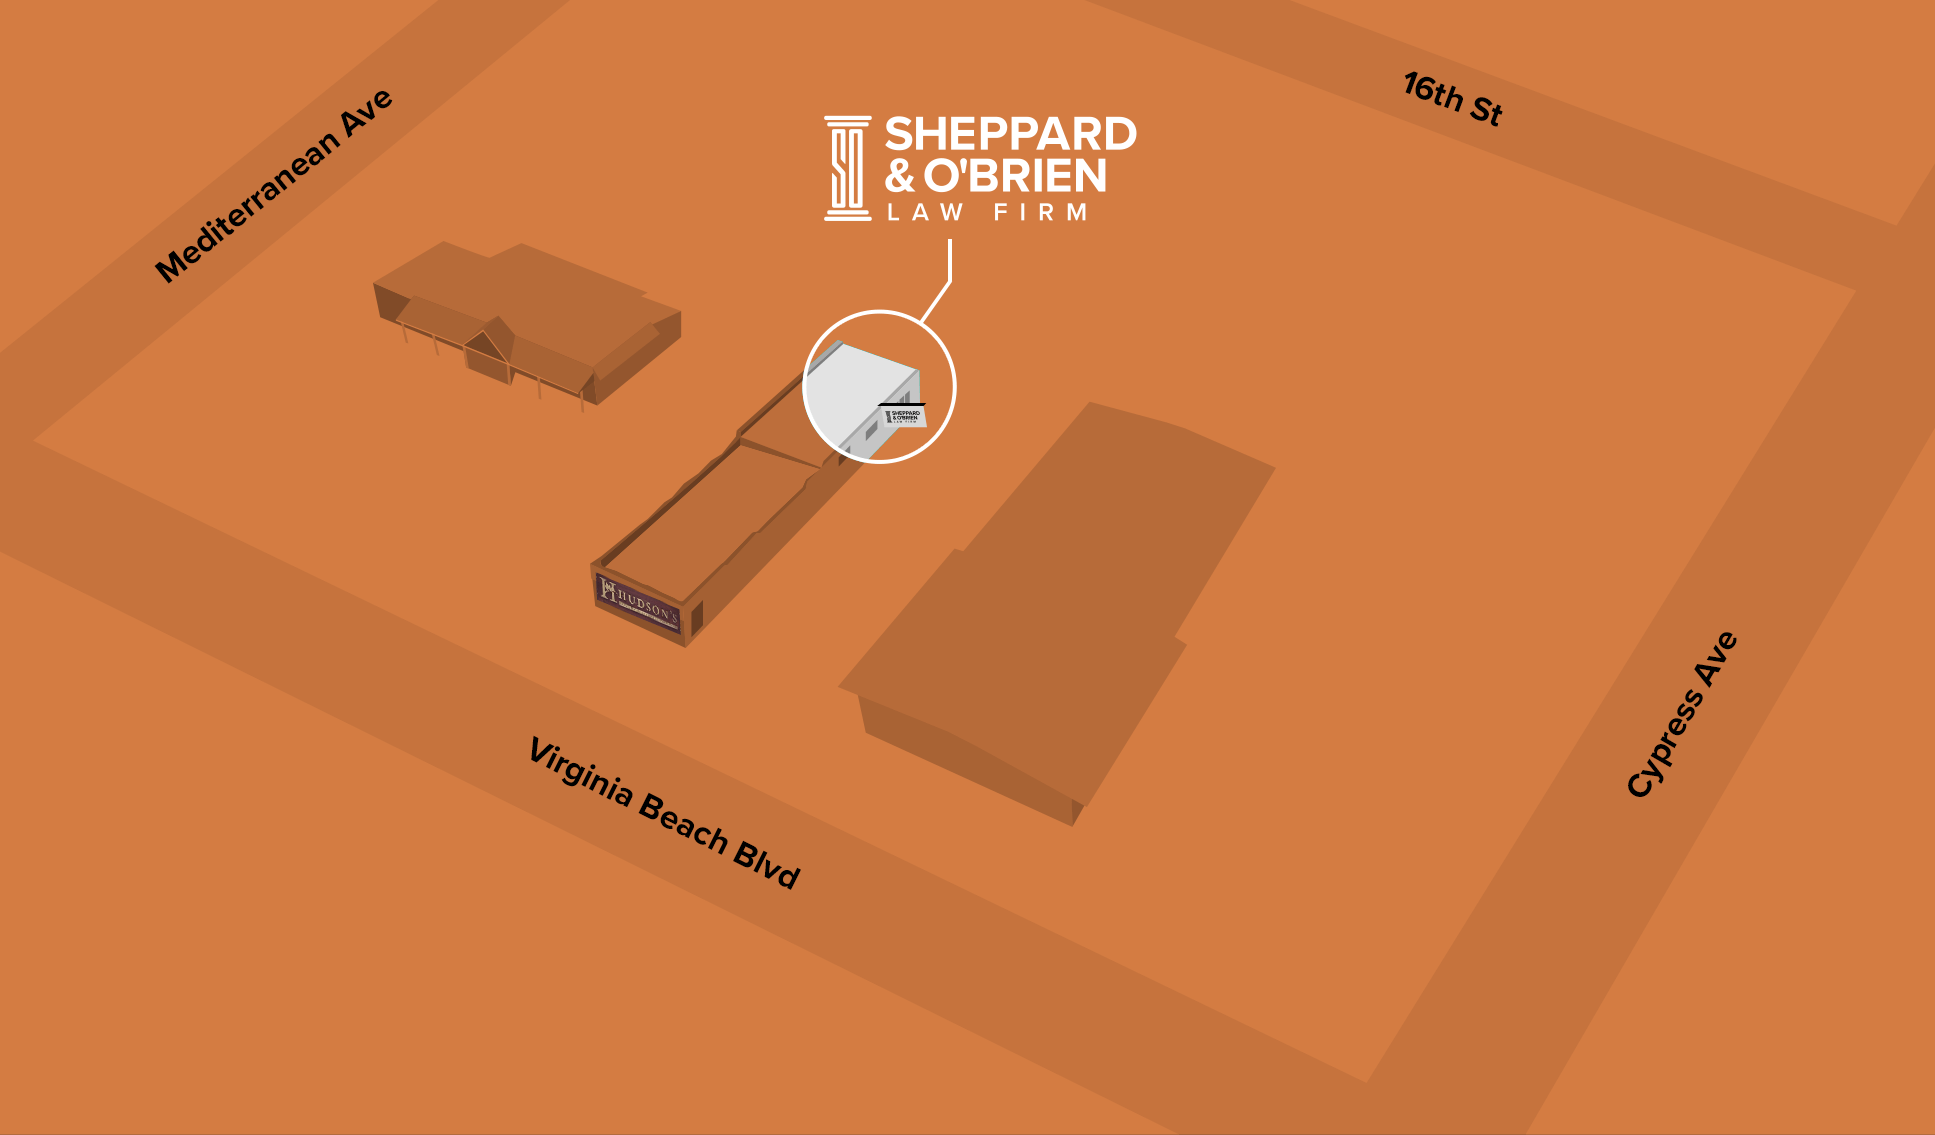 map of Sheppard & O'Brien location